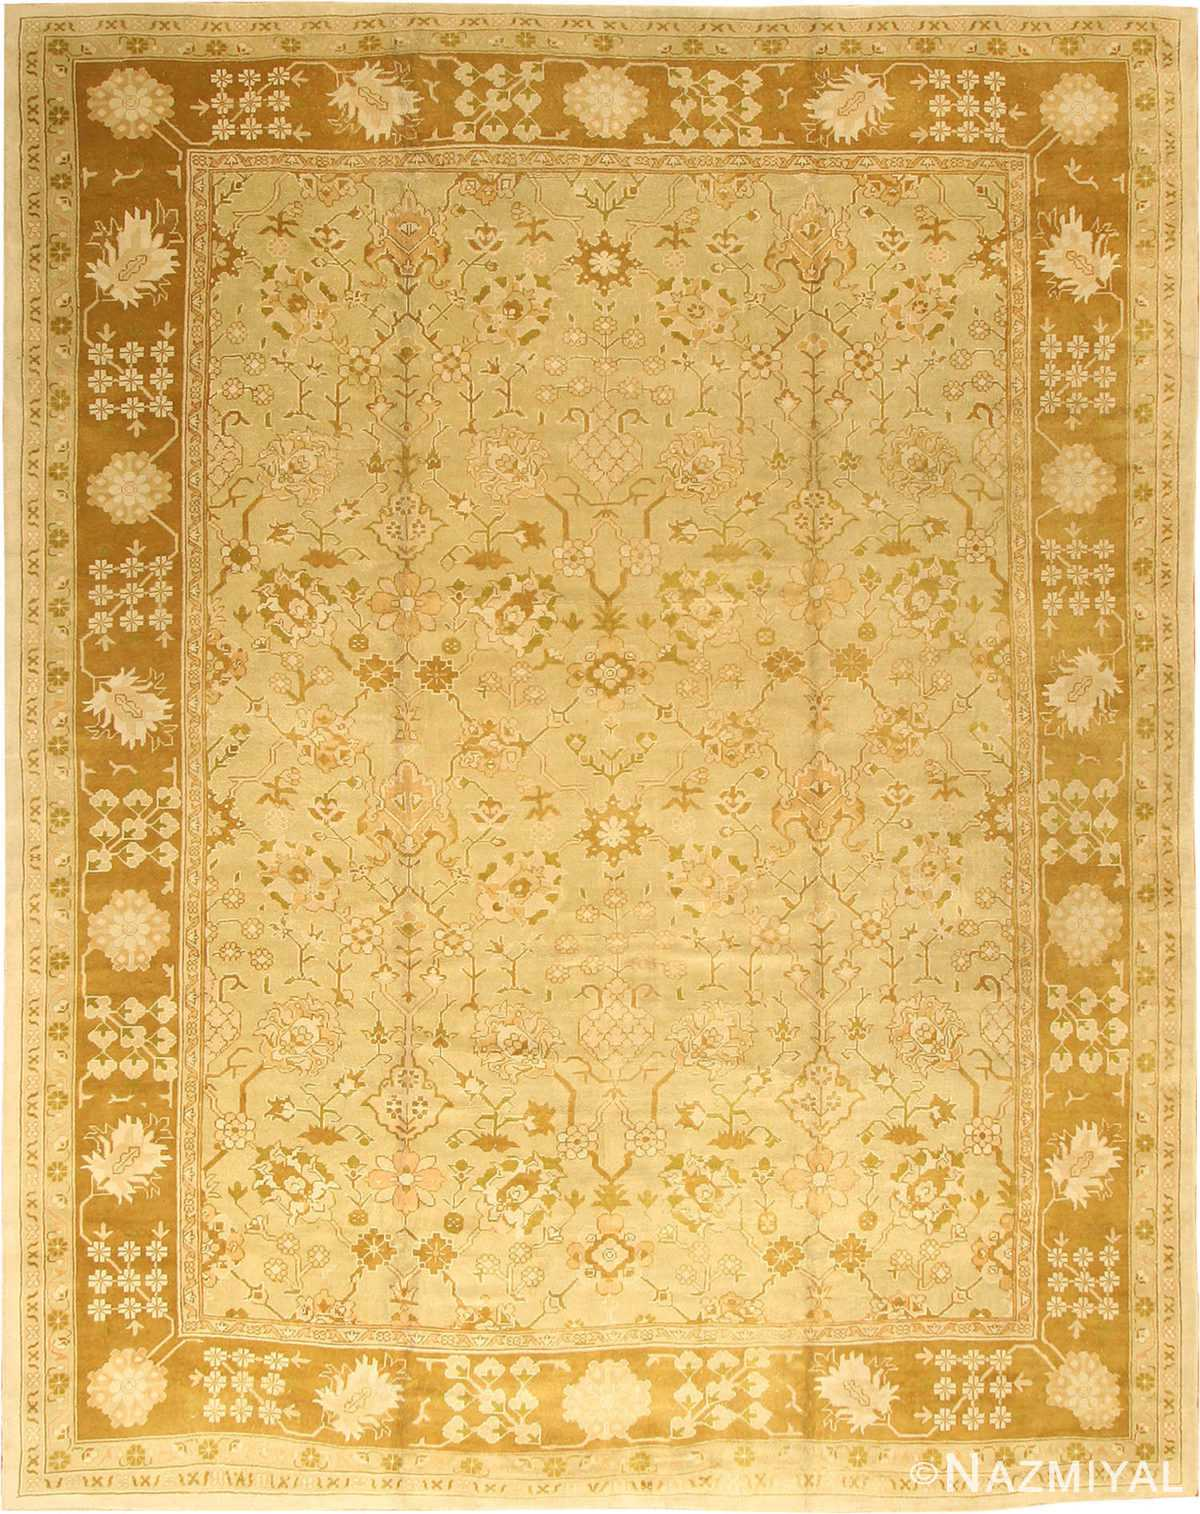 Antique Oushak Turkish Rug 42081 Nazmiyal